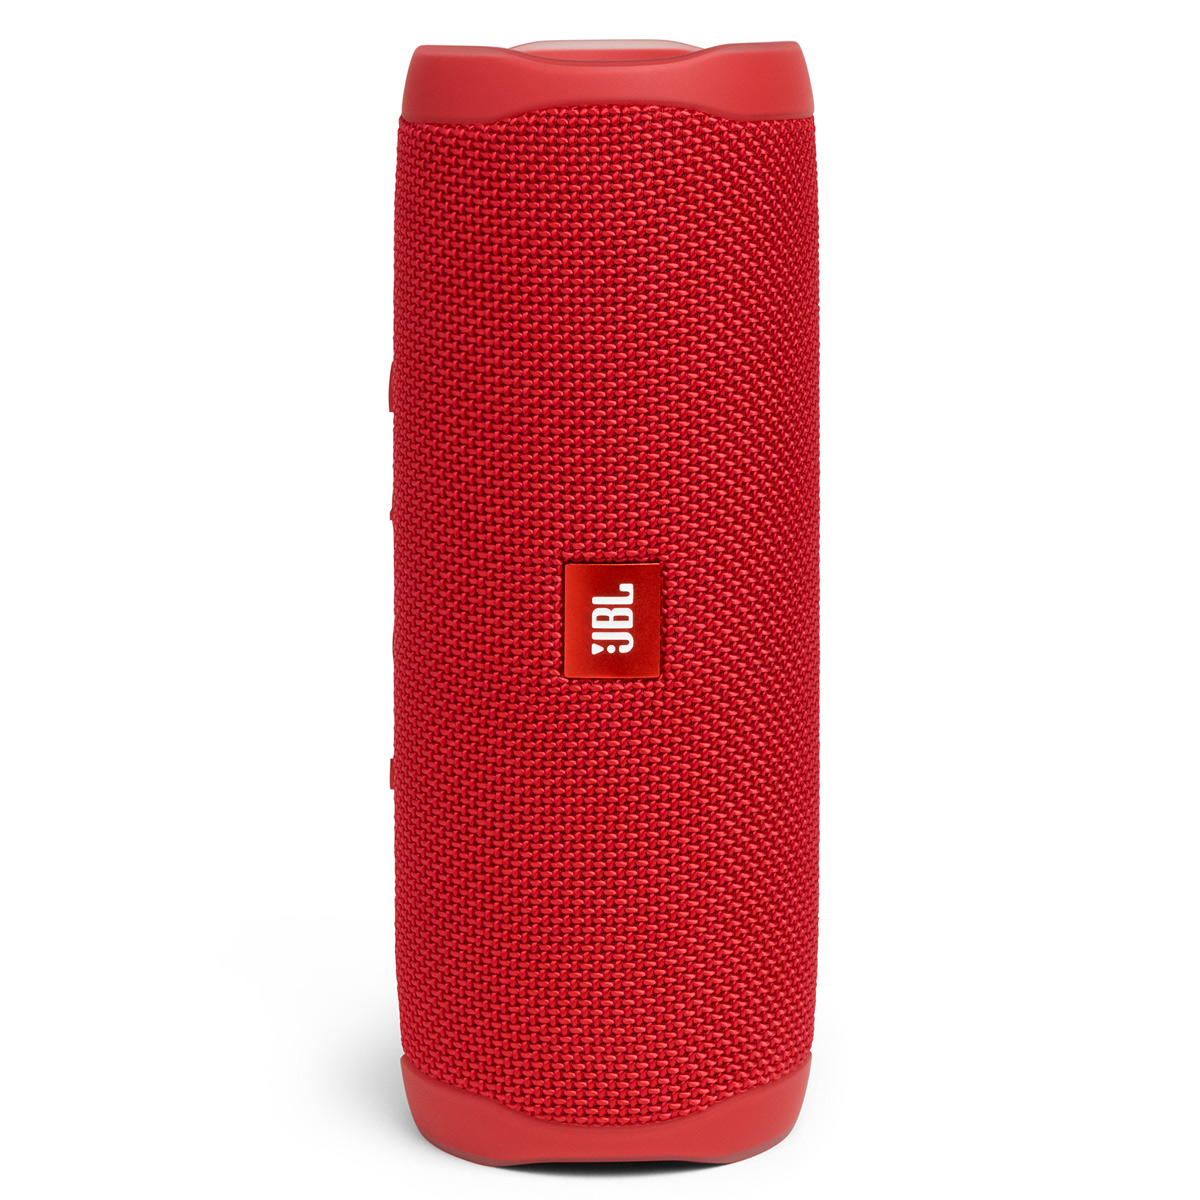 JBL-Flip-5-Portable-Waterproof-Bluetooth-Speaker thumbnail 30